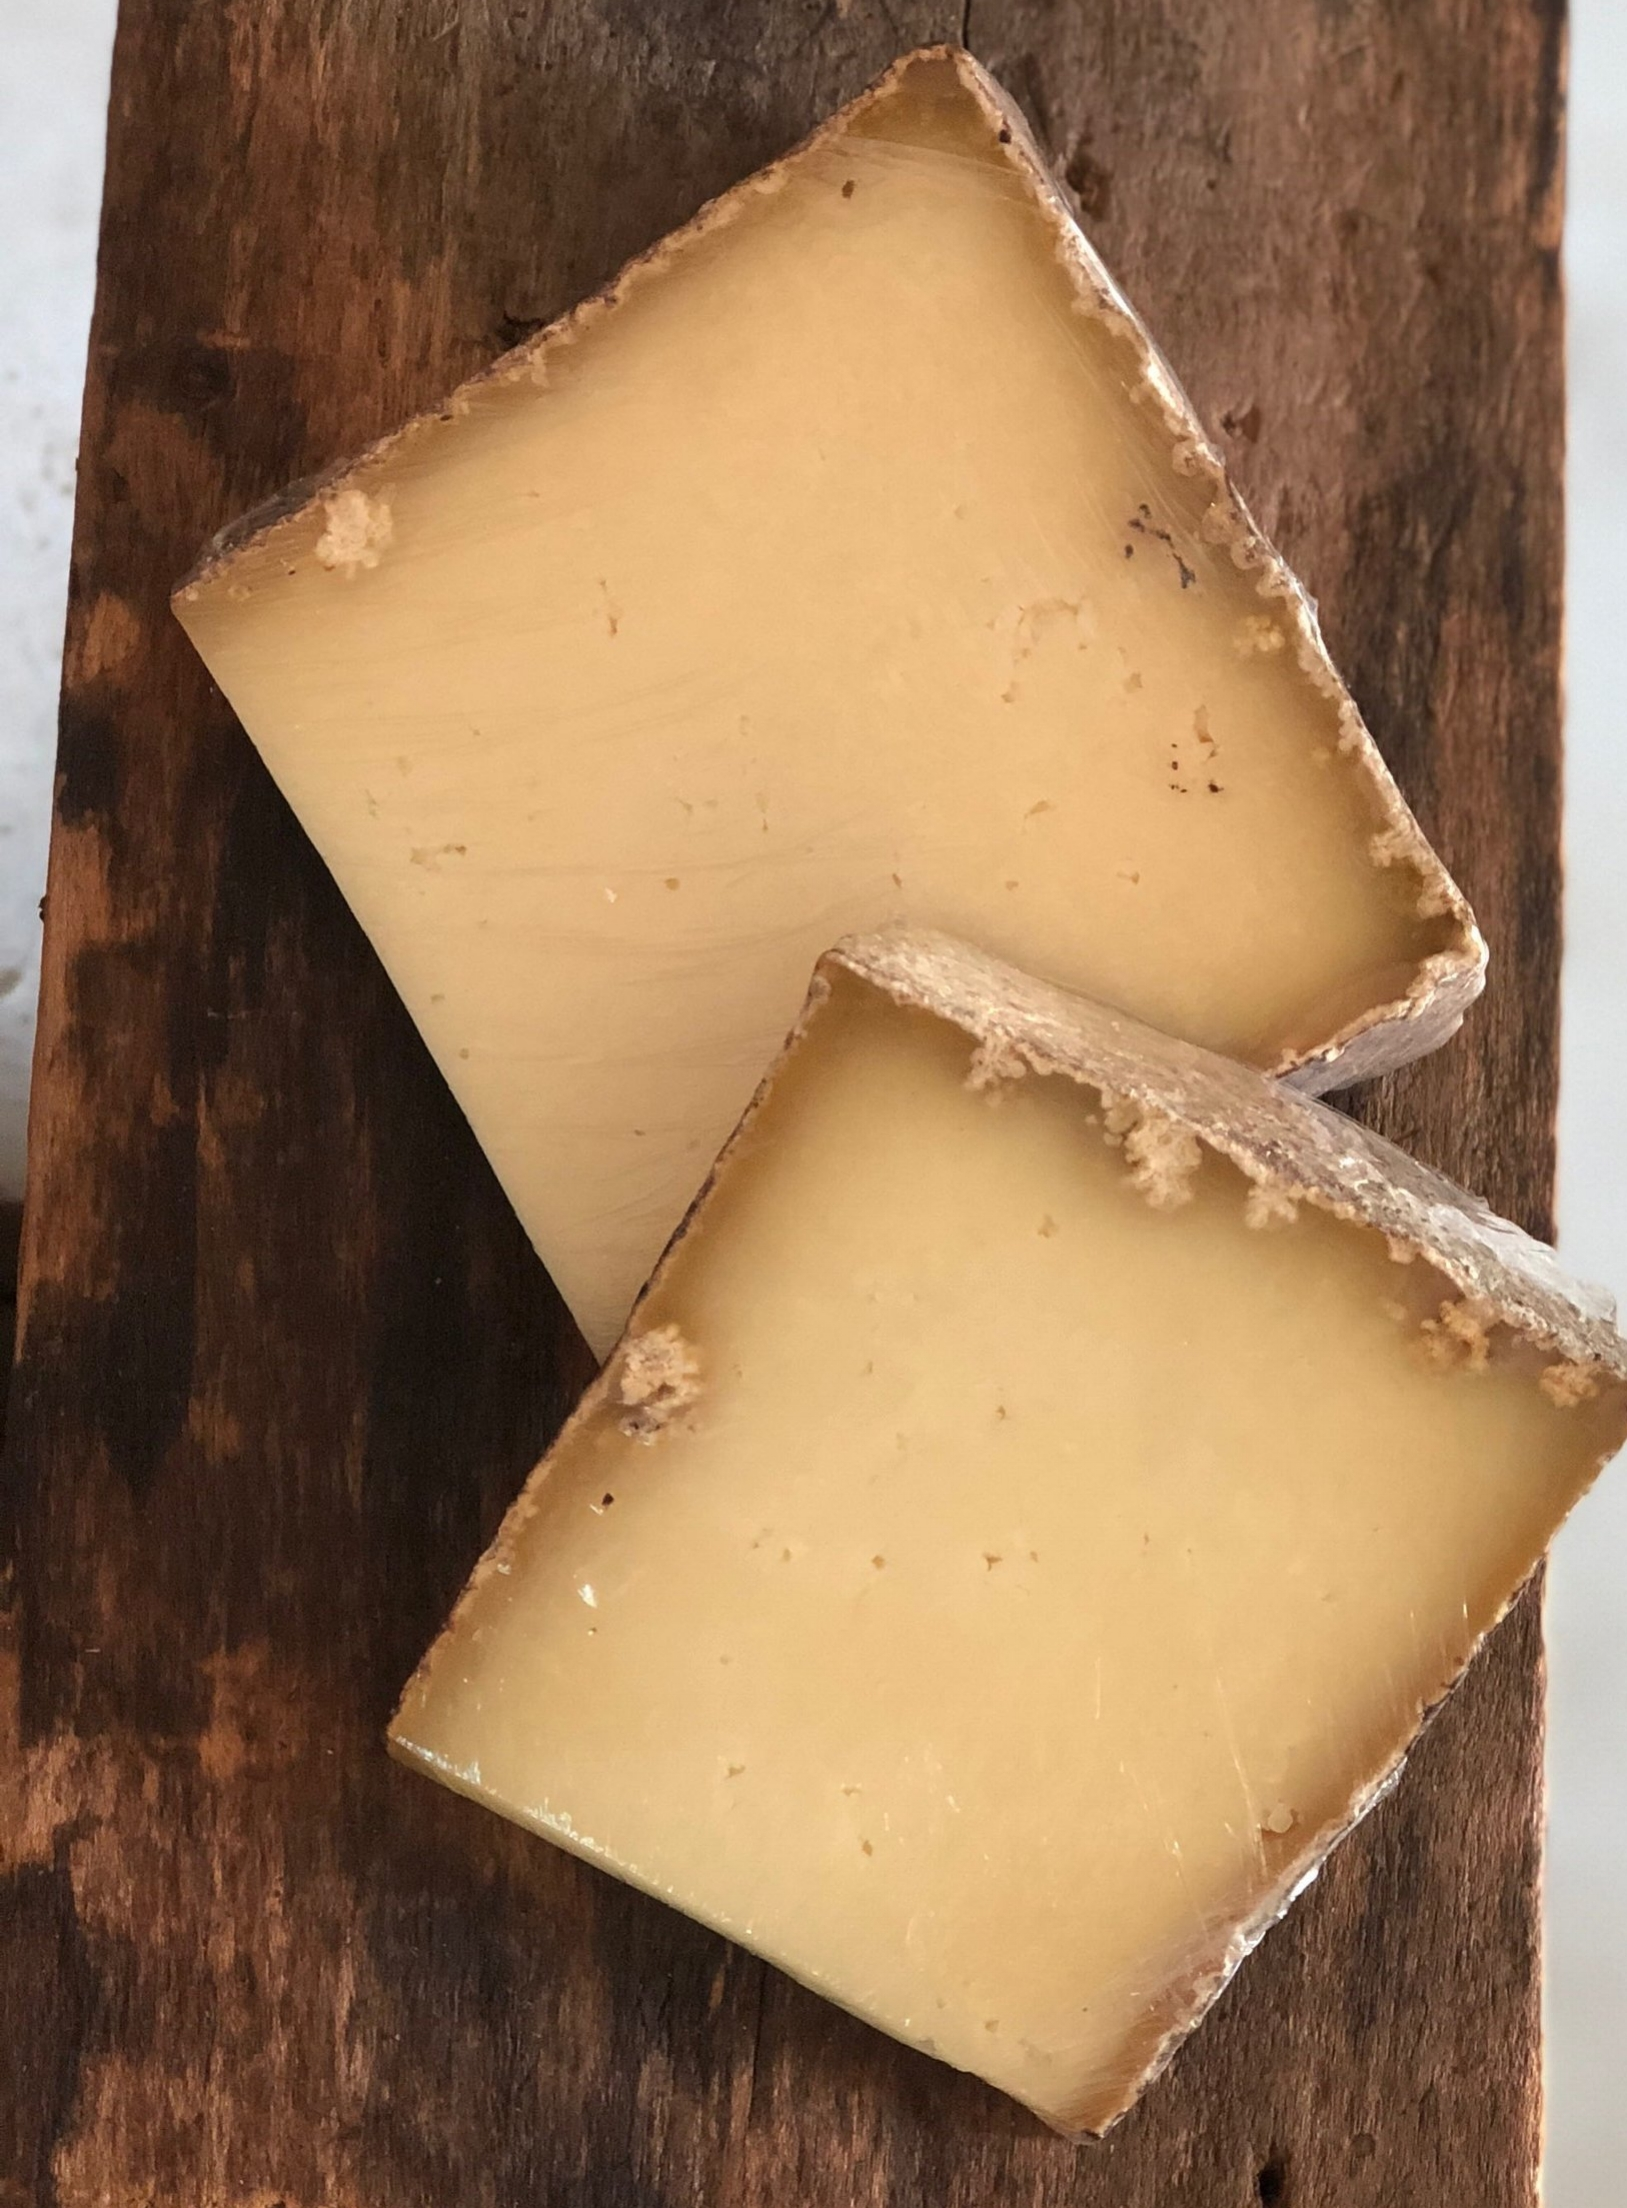 Grey Ghost , a French alpine style raw milk cheese, aged for 3-6 months in our cheese cave  Limited availability year round